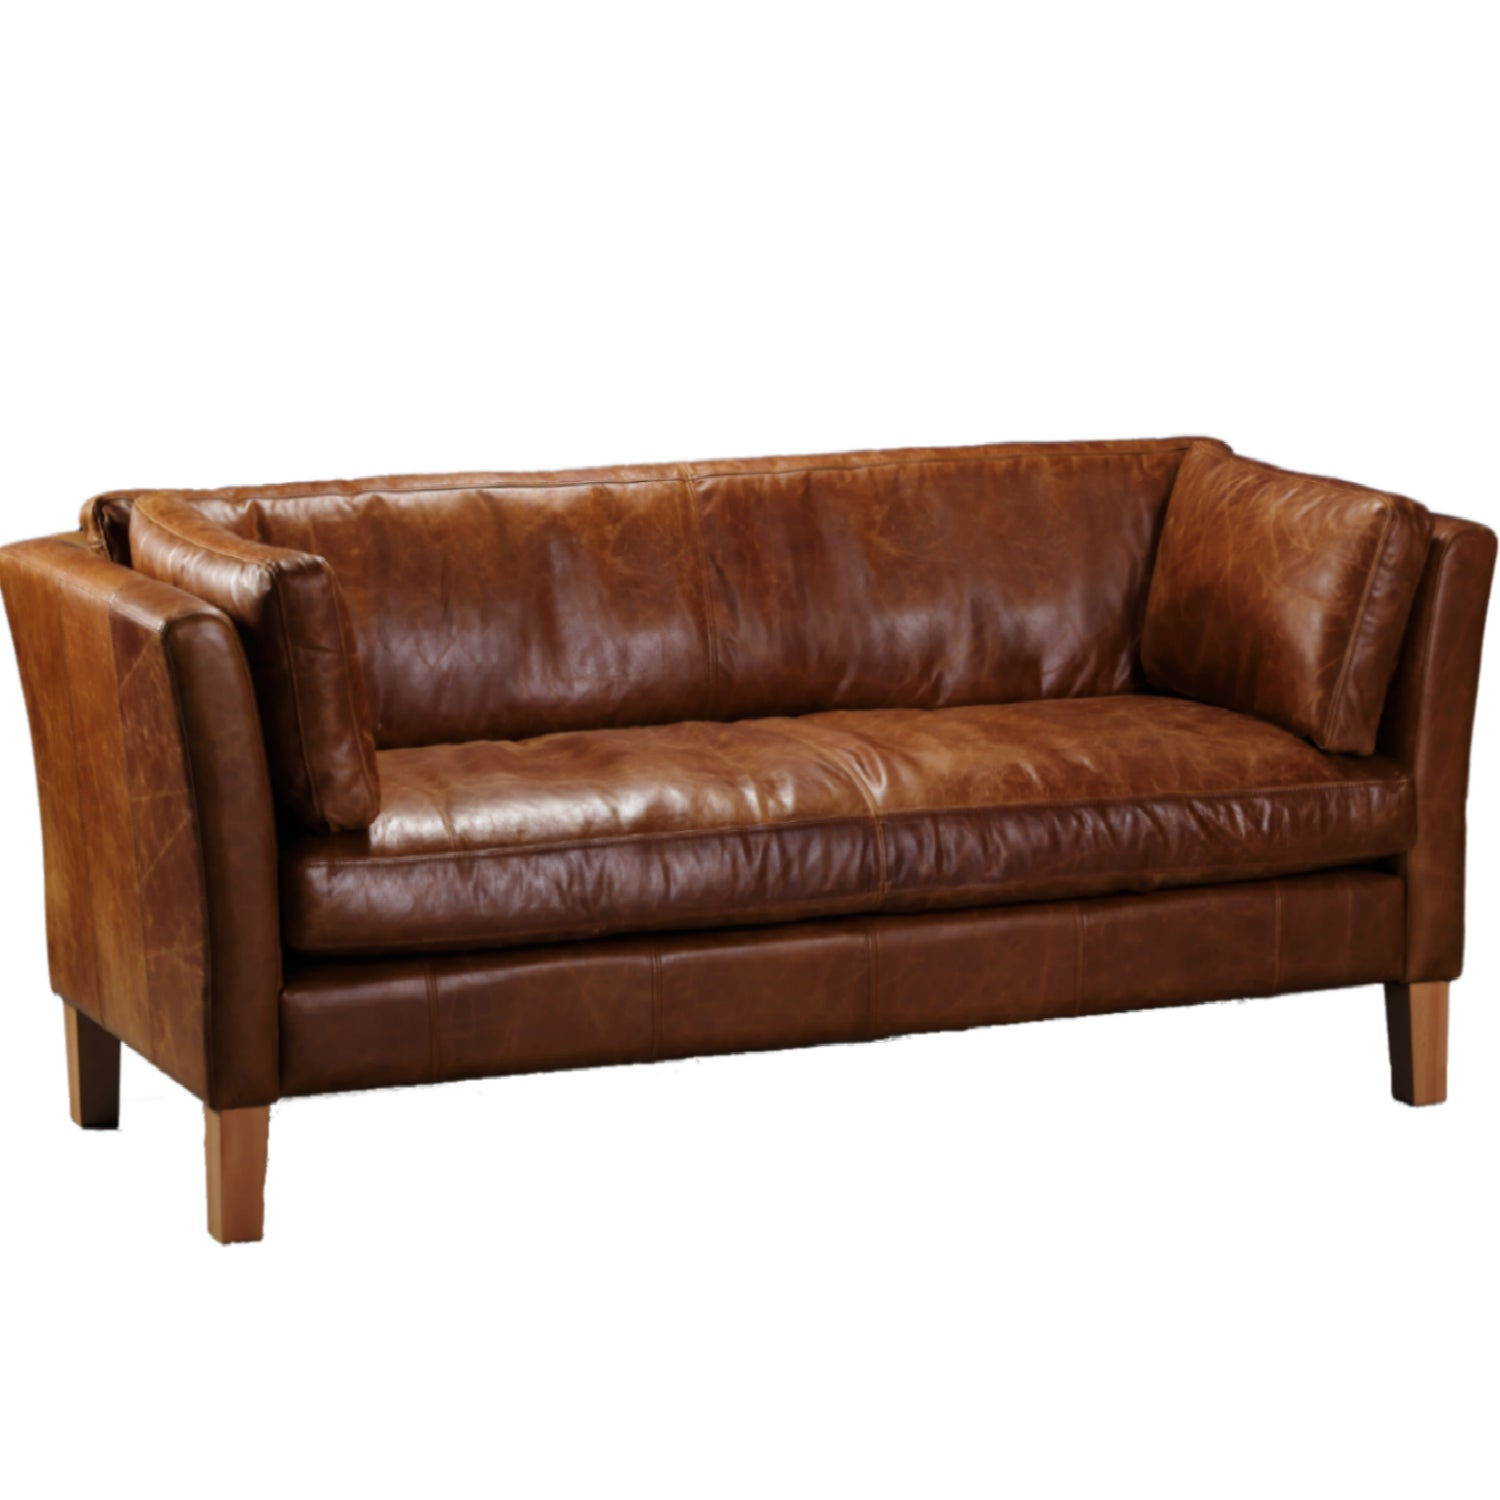 Barkby Full Aniline Leather Sofas-harris tweed leather sofas-Against The Grain Furniture-3 seater-Against The Grain Furniture